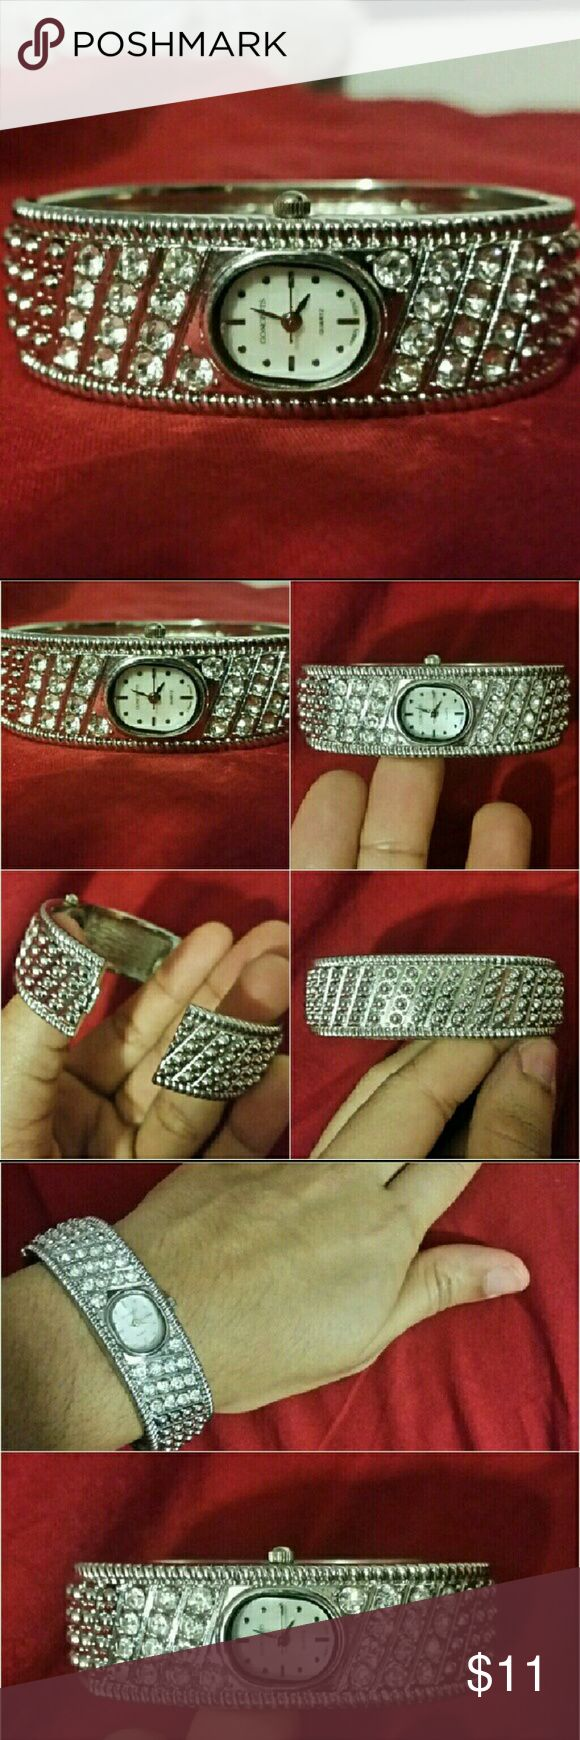 Silver women Bracelet watch New bracelet watch Material: Stainless still, color: Silver Accessories Watches